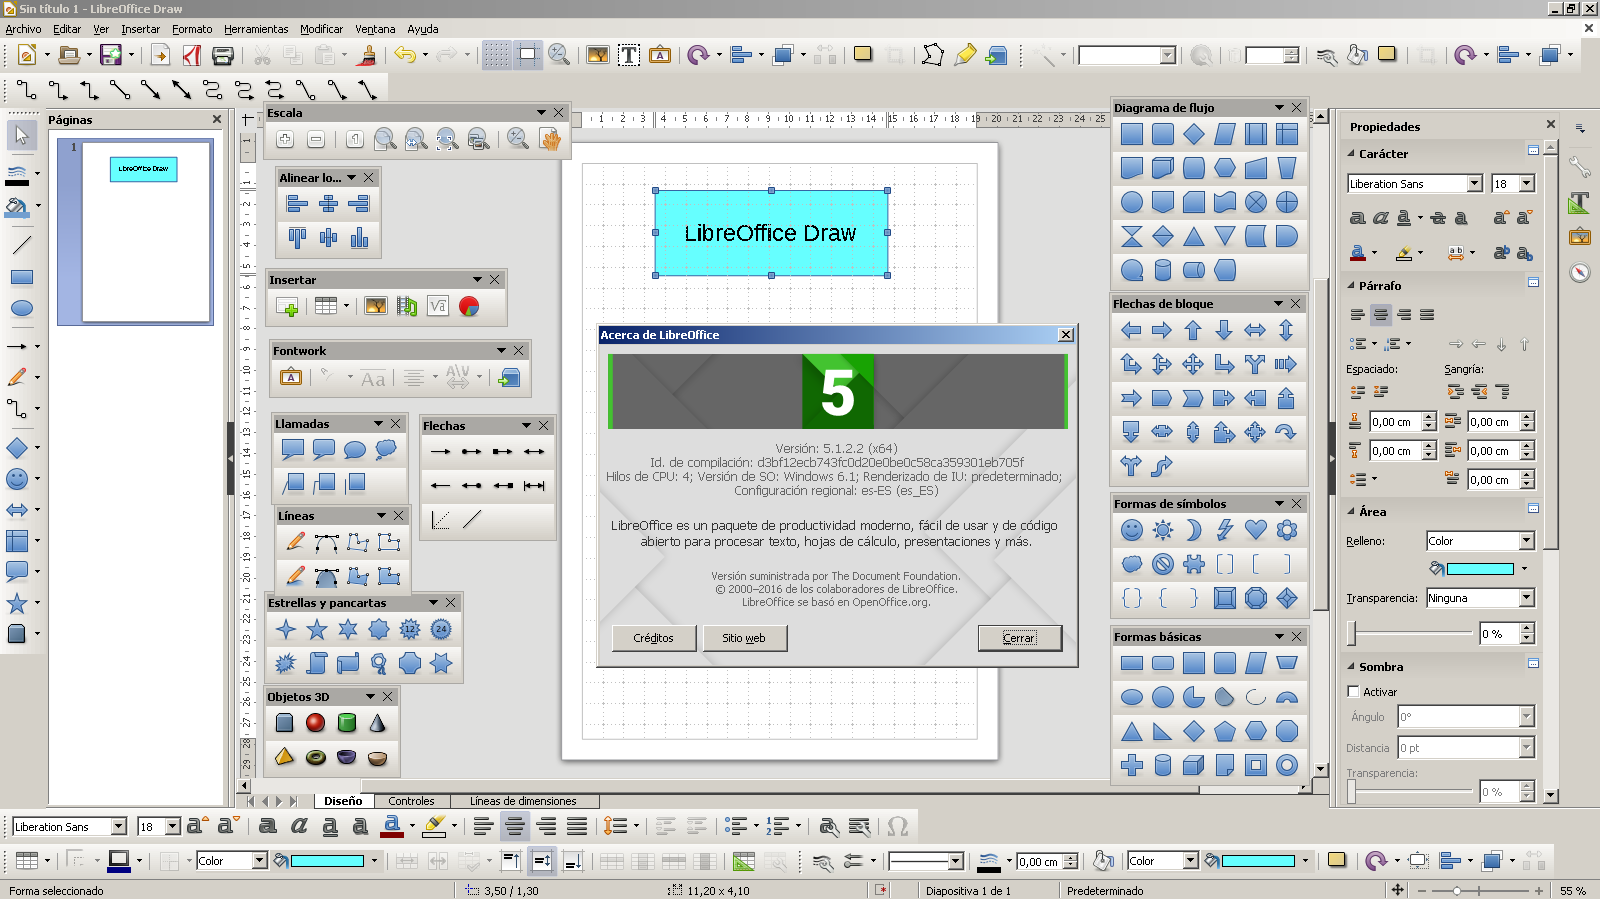 File Libreoffice Draw 5 1 2 2 Png Wikimedia Commons